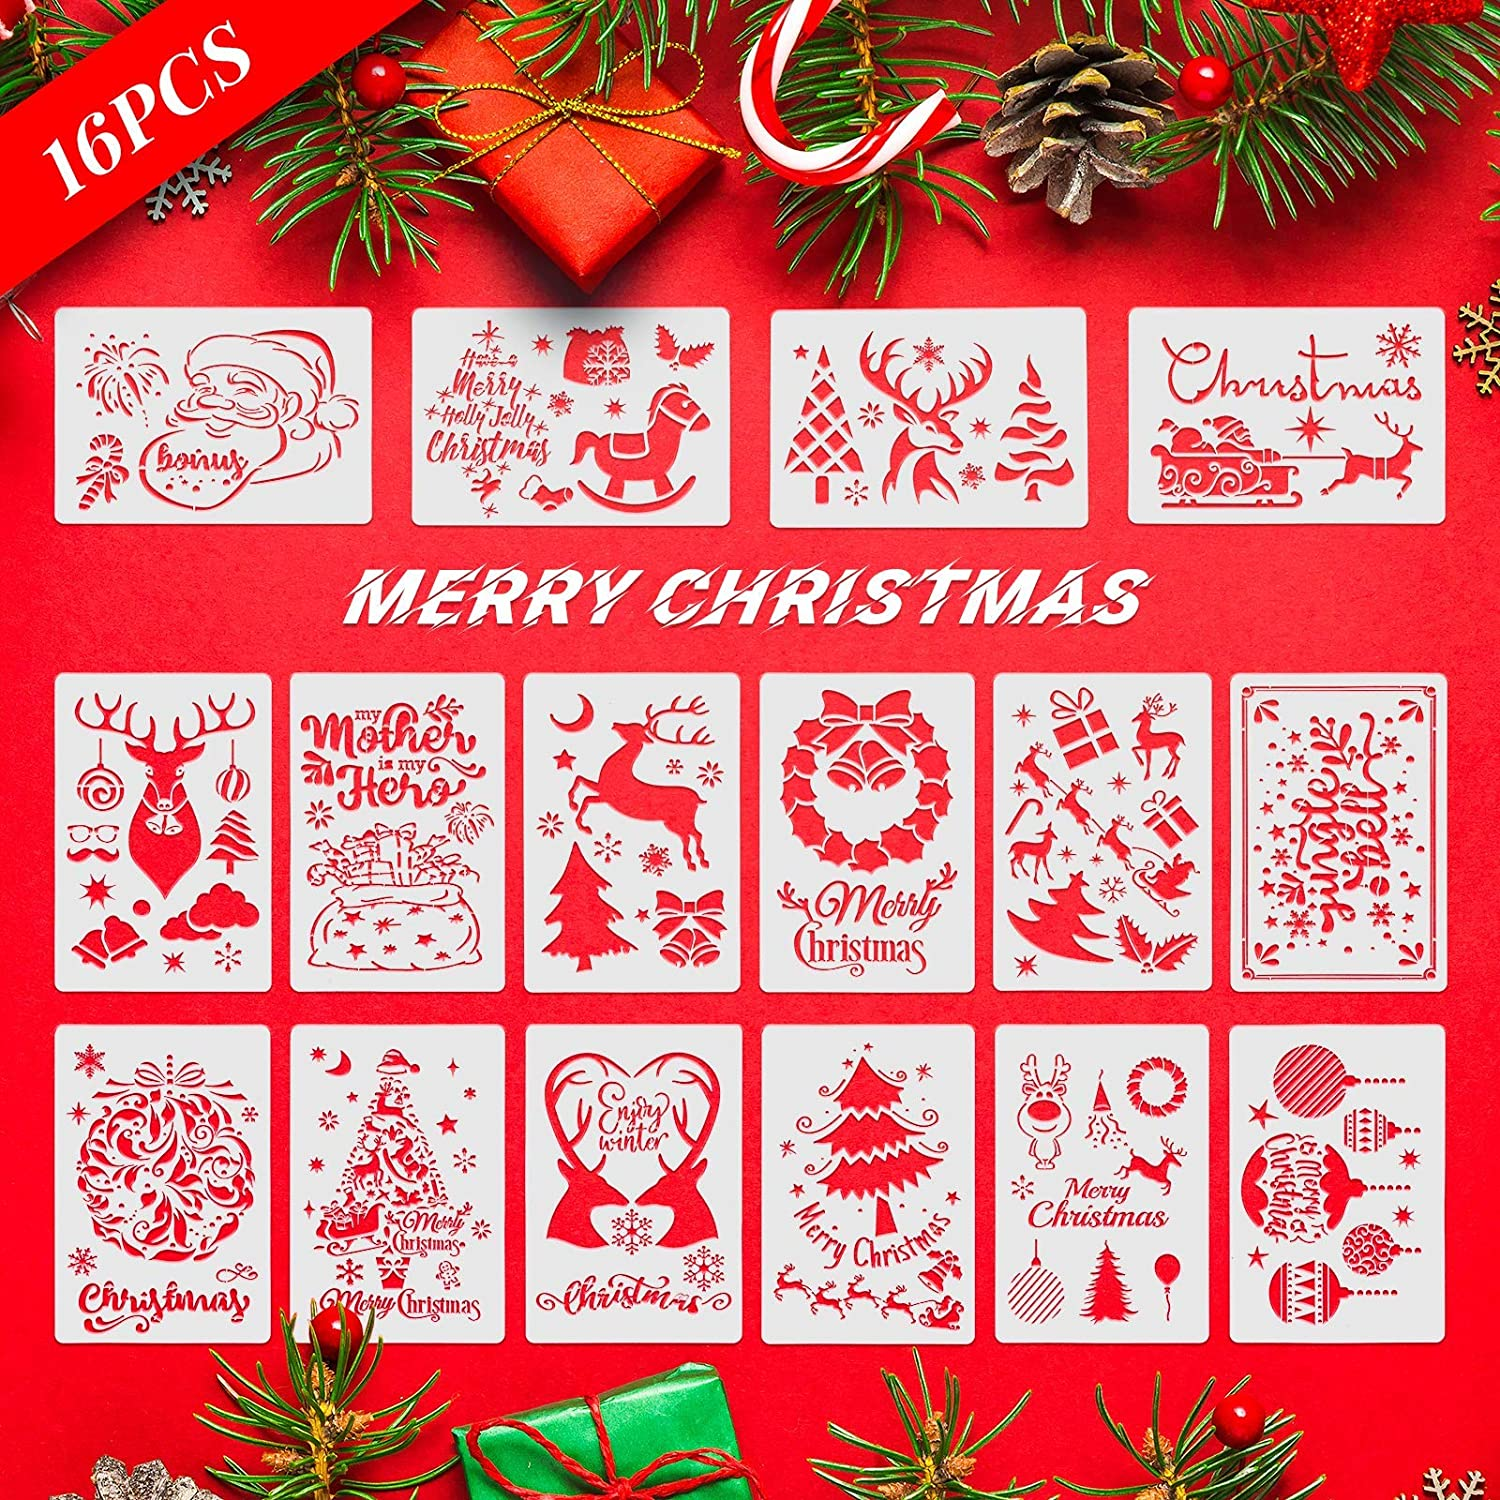 Tersale 16pcs Christmas Stencil Template,Reusable Material Christmas Stencils with Christmas Tree,Reindeer,Snowman,Snowflake Pattern,for Glass,Wood,Wall, Metal,Stone,Paper,Posters Painting,etc.